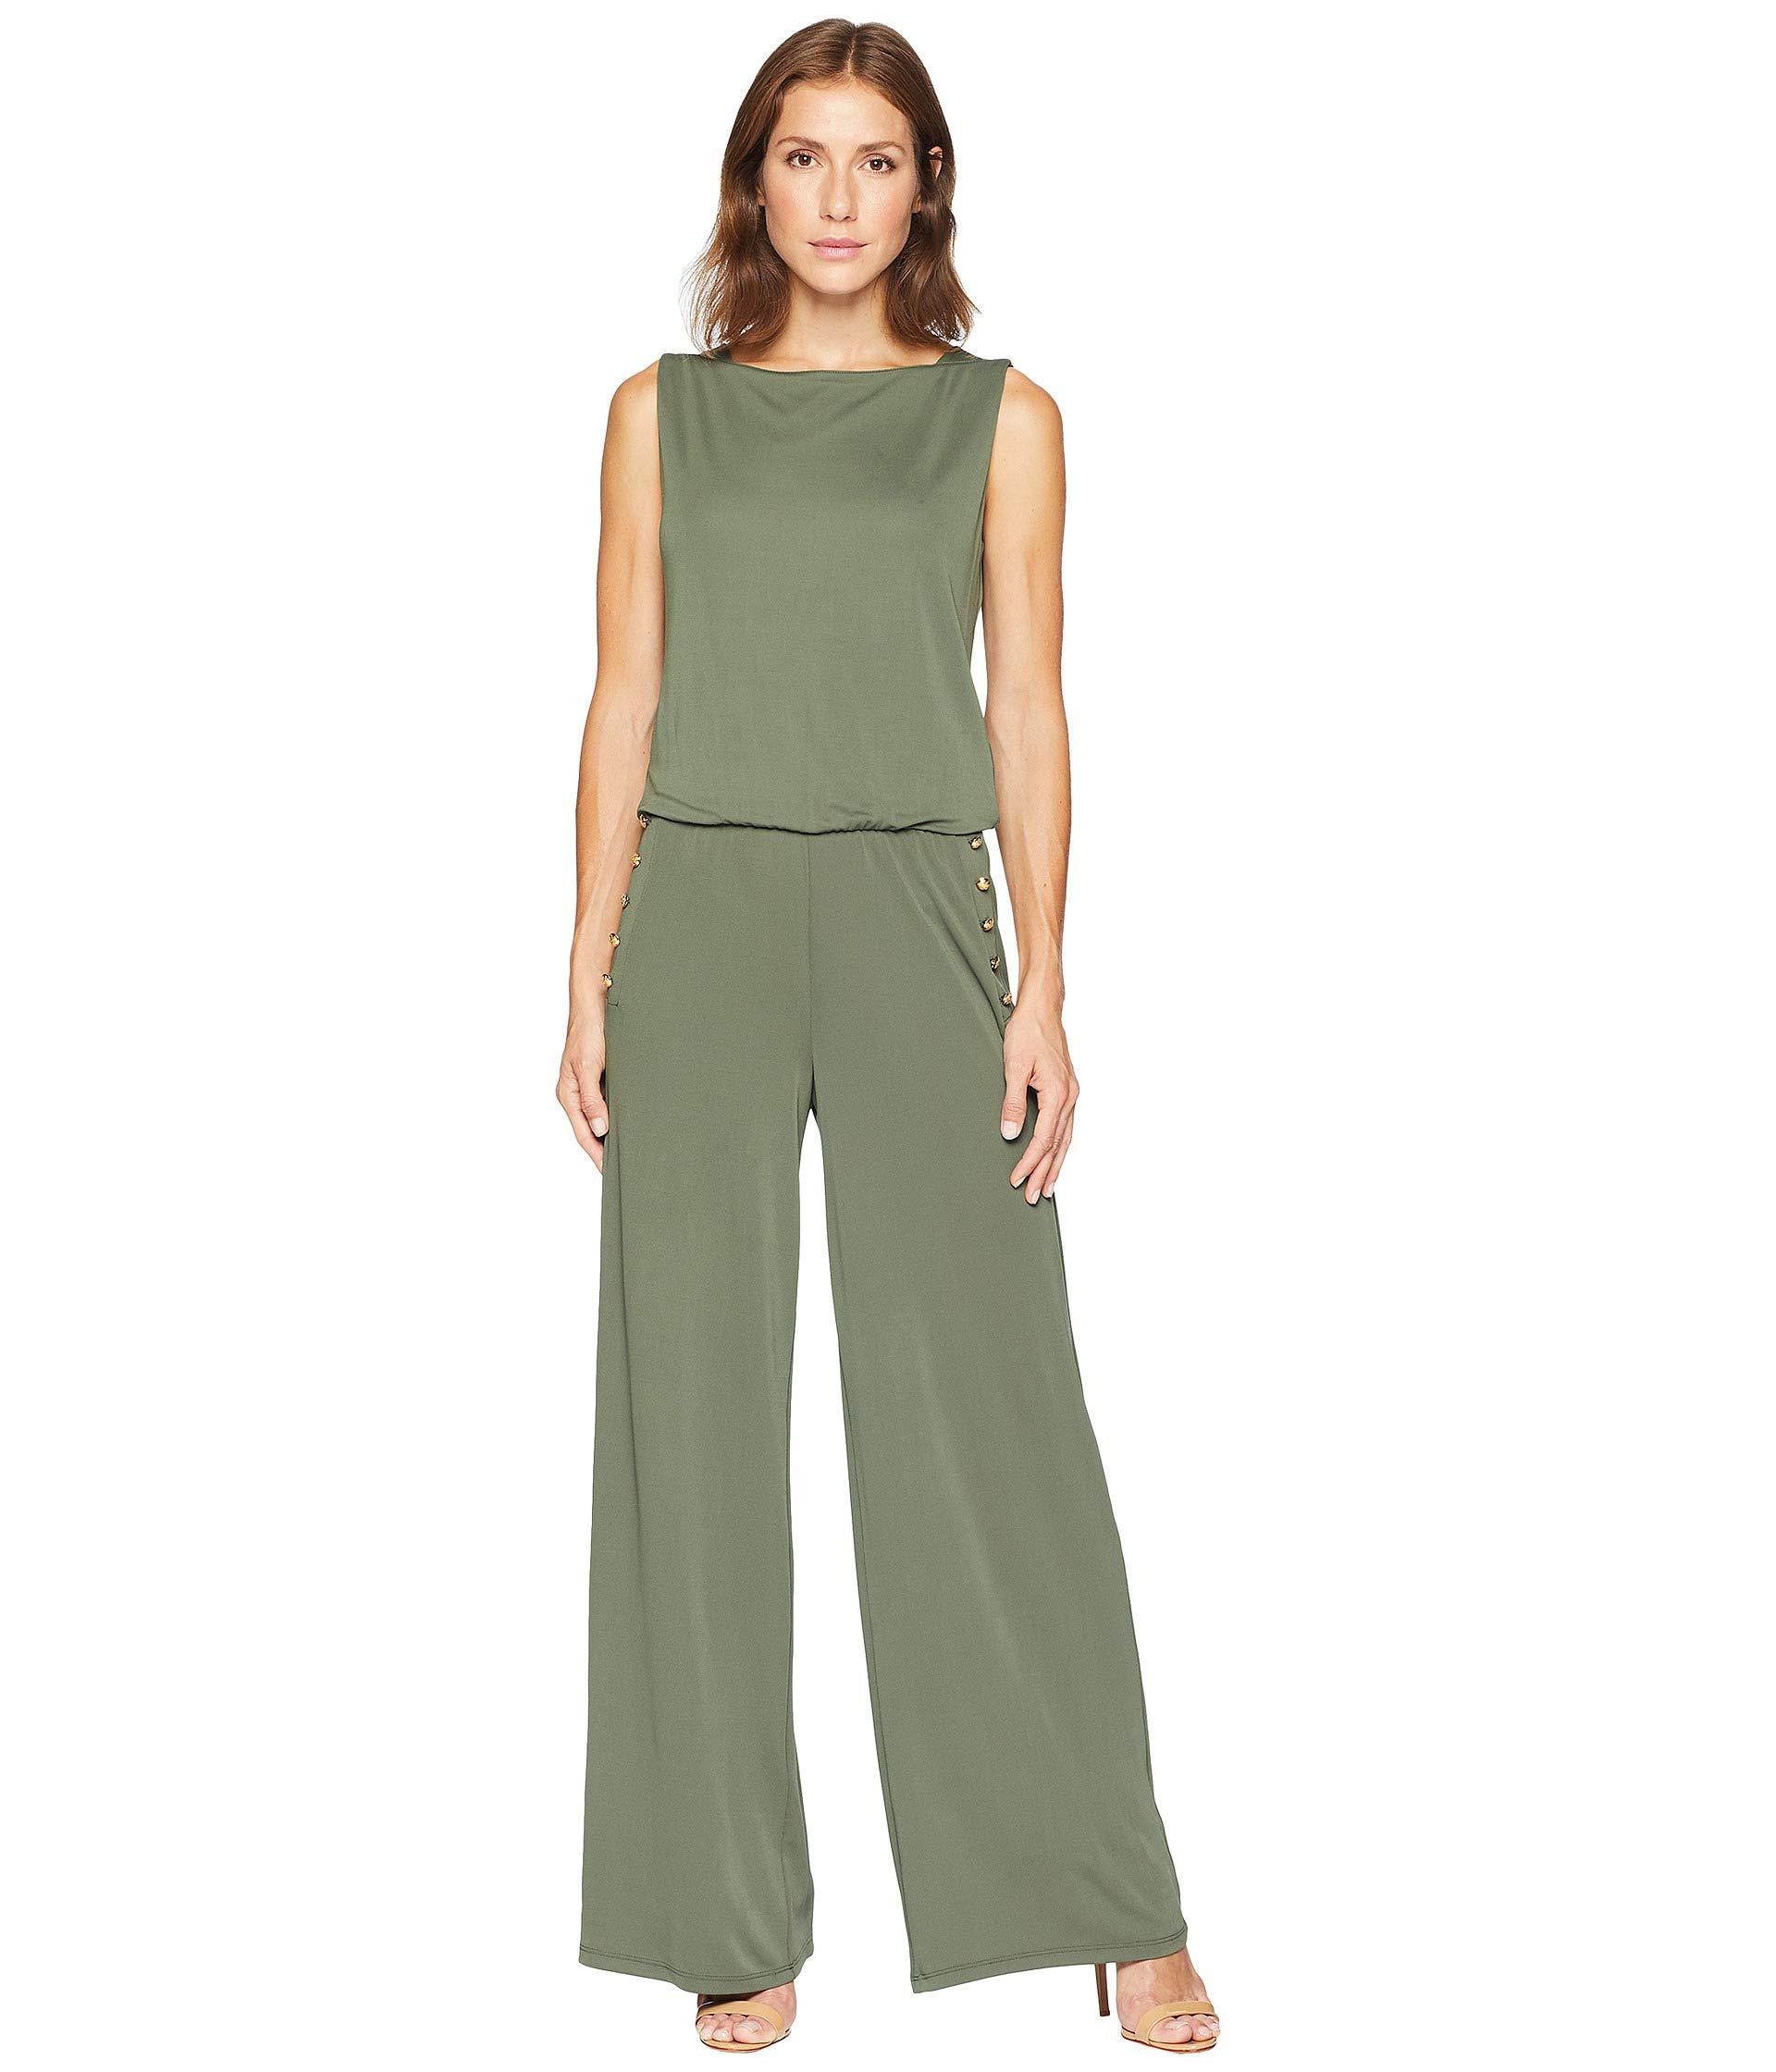 bac1917ff14 Lyst - Lauren by Ralph Lauren Jersey Wide-leg Jumpsuit in Green ...